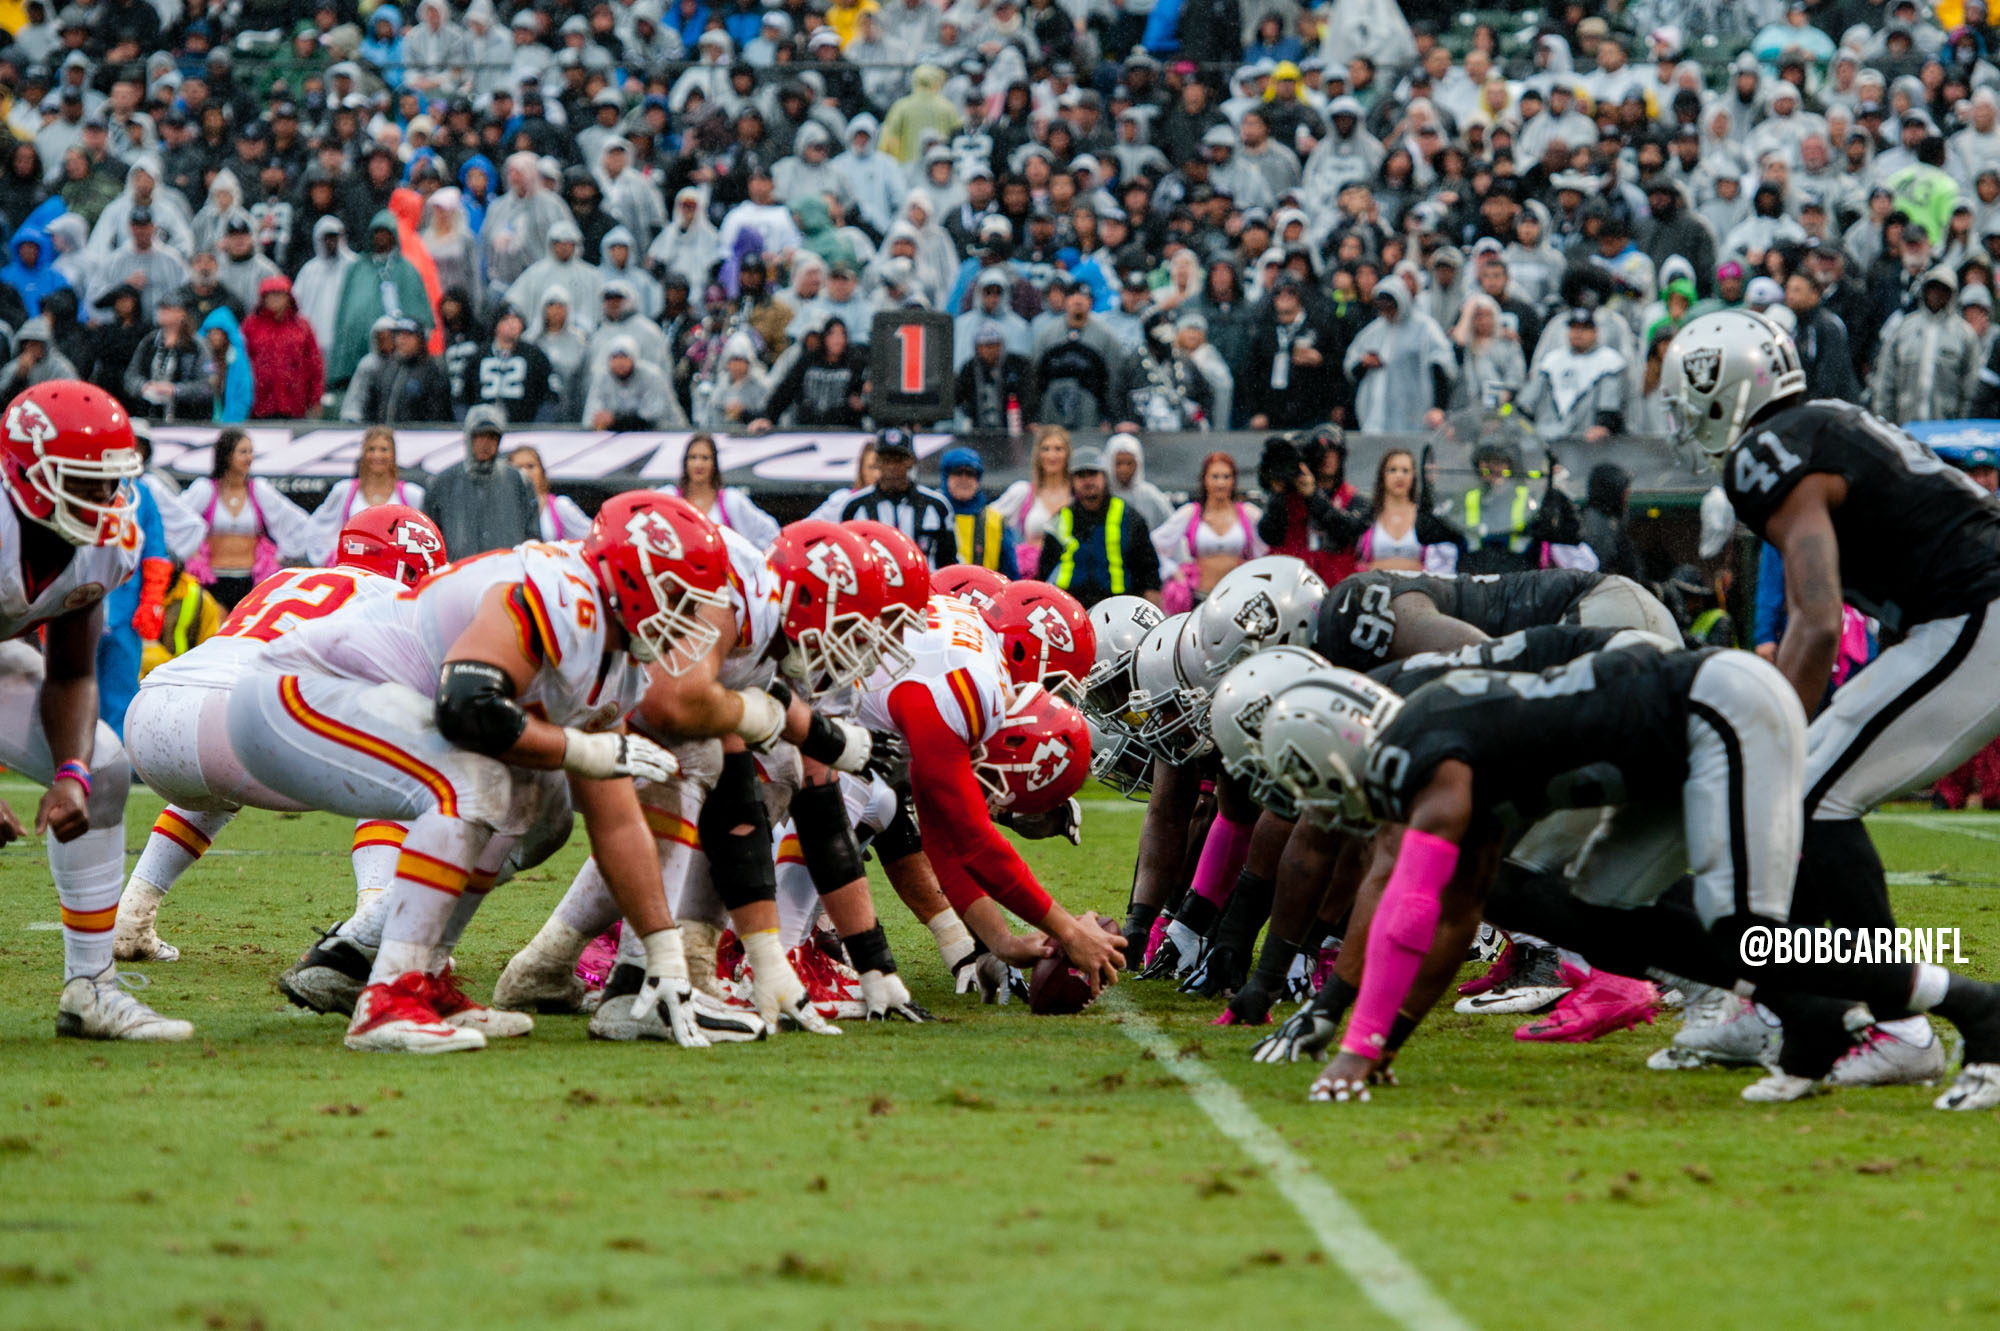 Countdown to Paydirt: Raiders host the Chiefs under the lights